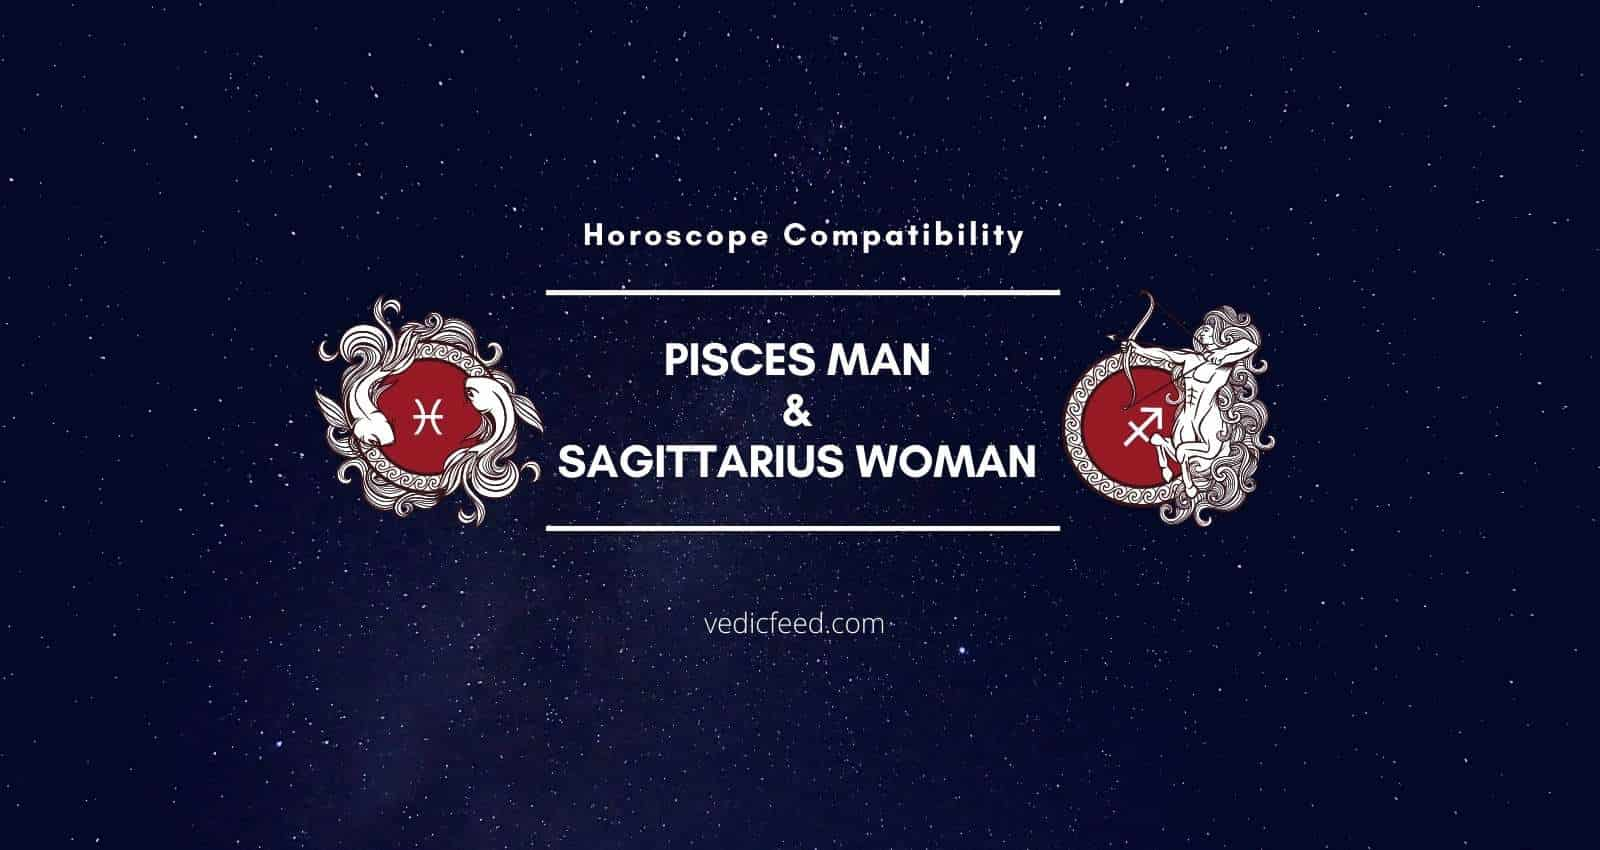 Pisces Man and Sagittarius Woman Compatibility